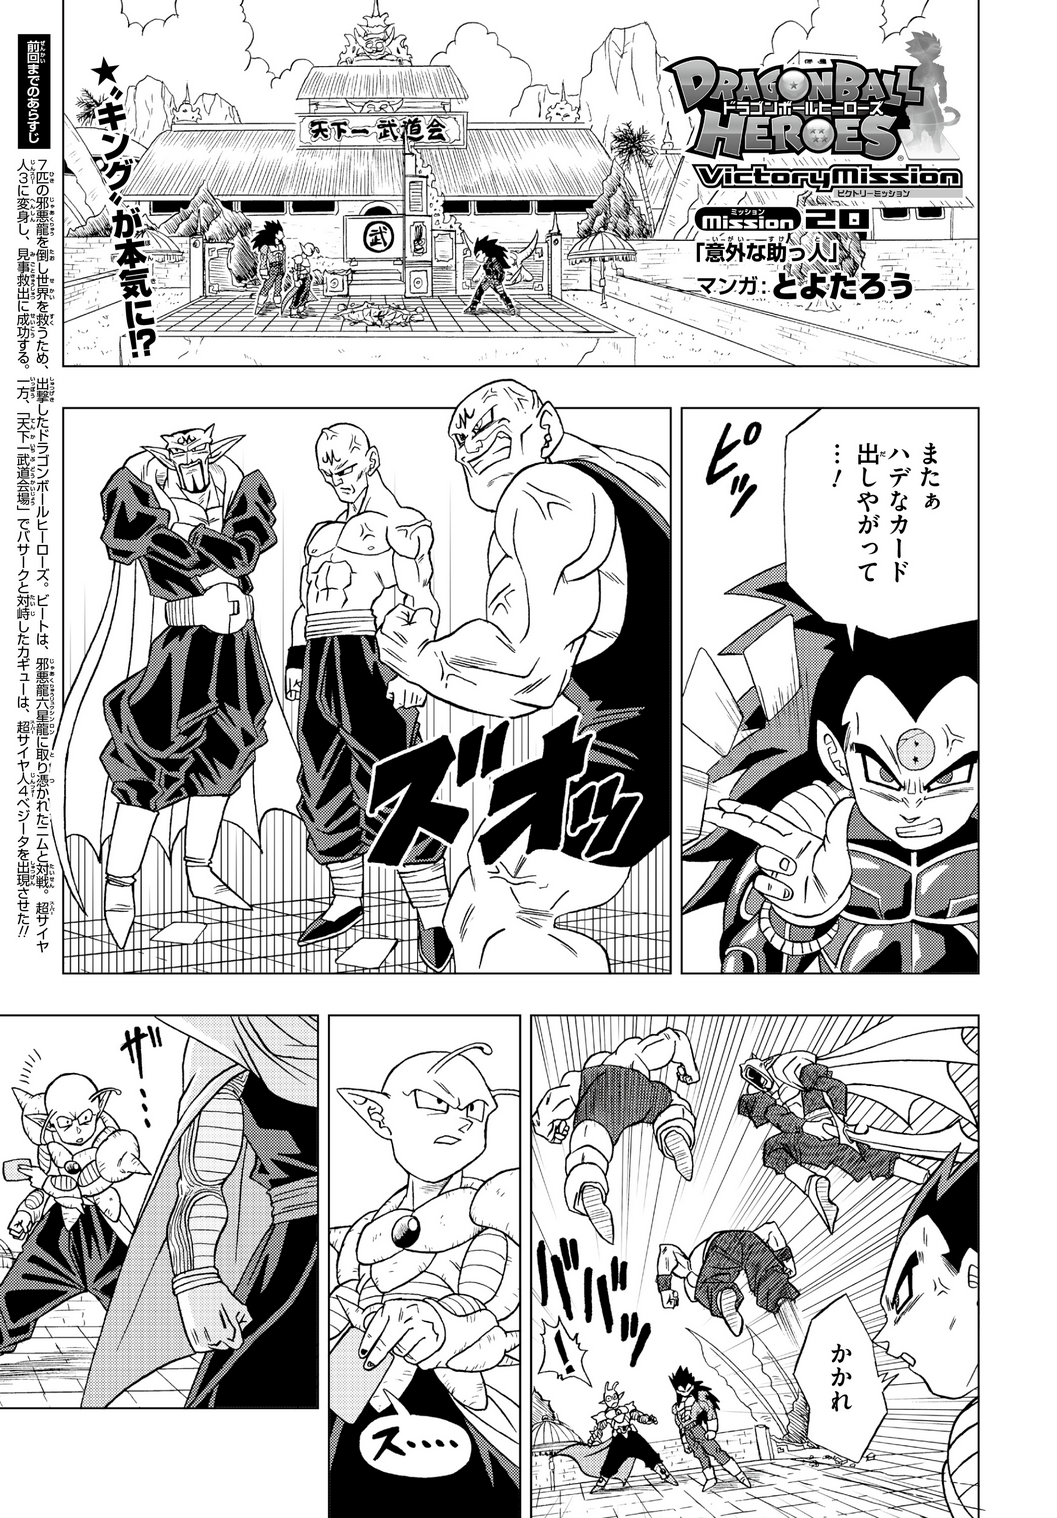 Dragon Ball Heroes Victory Mission Chapitre 020